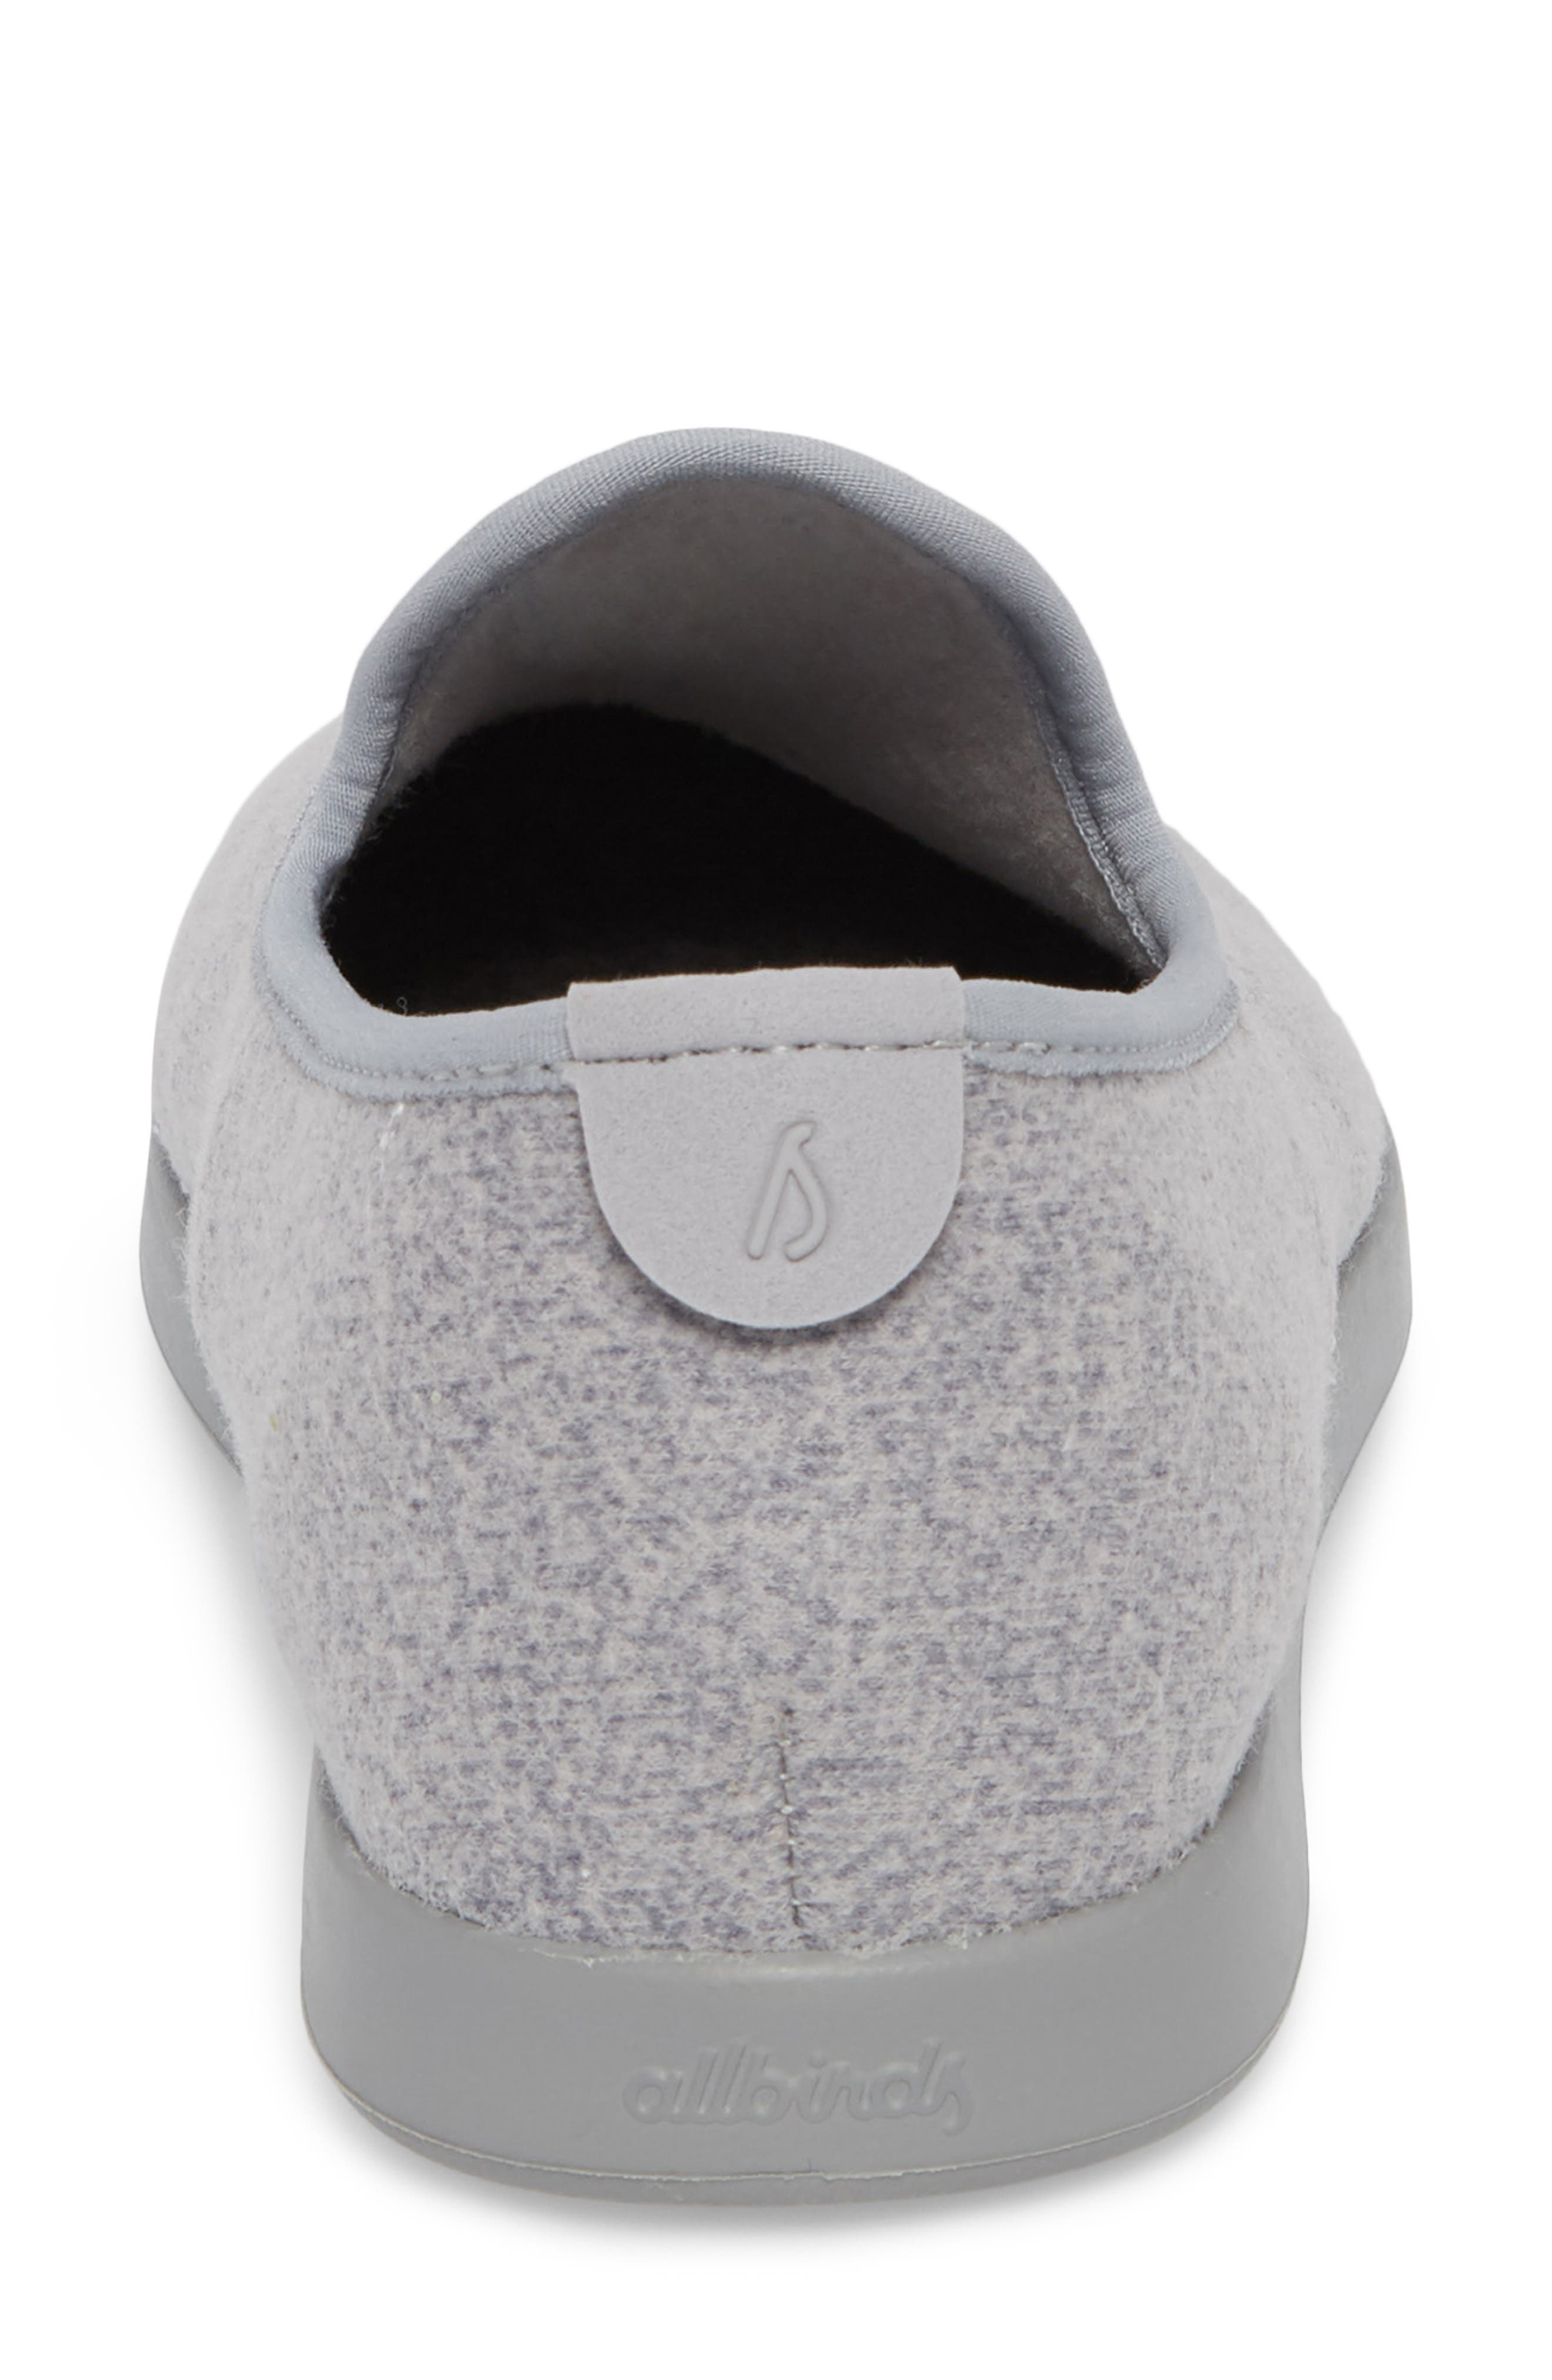 Wool Lounger,                             Alternate thumbnail 7, color,                             020